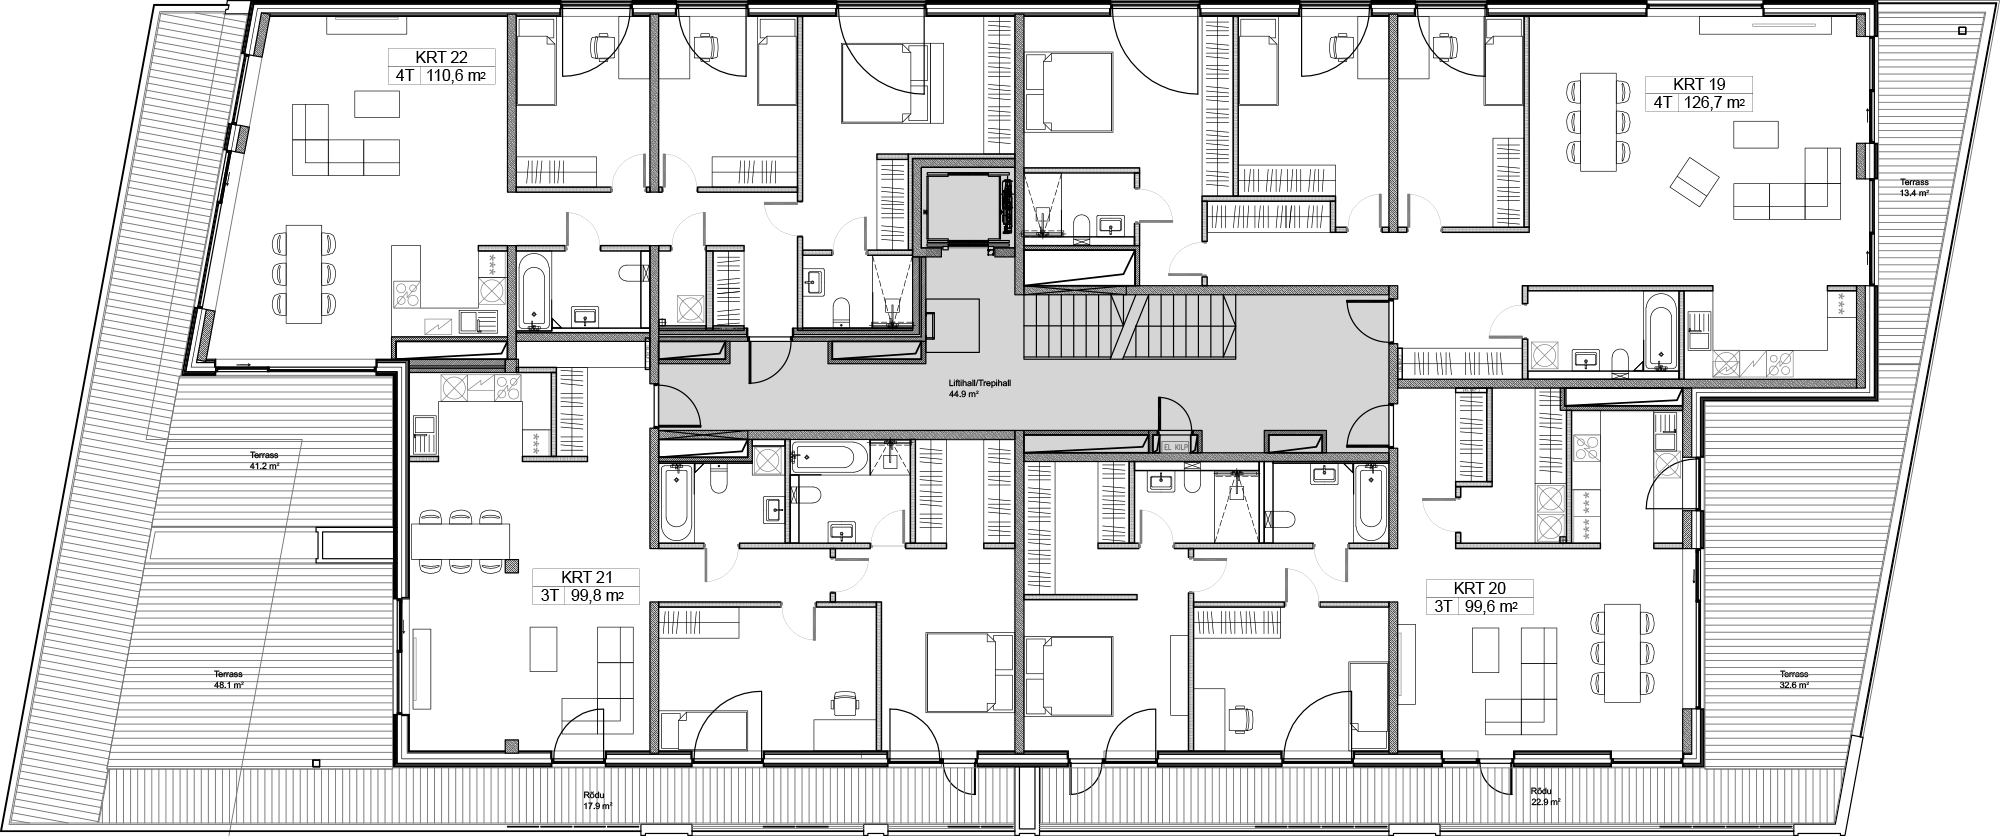 Floor 5 plan of Kiikri Apartment House A